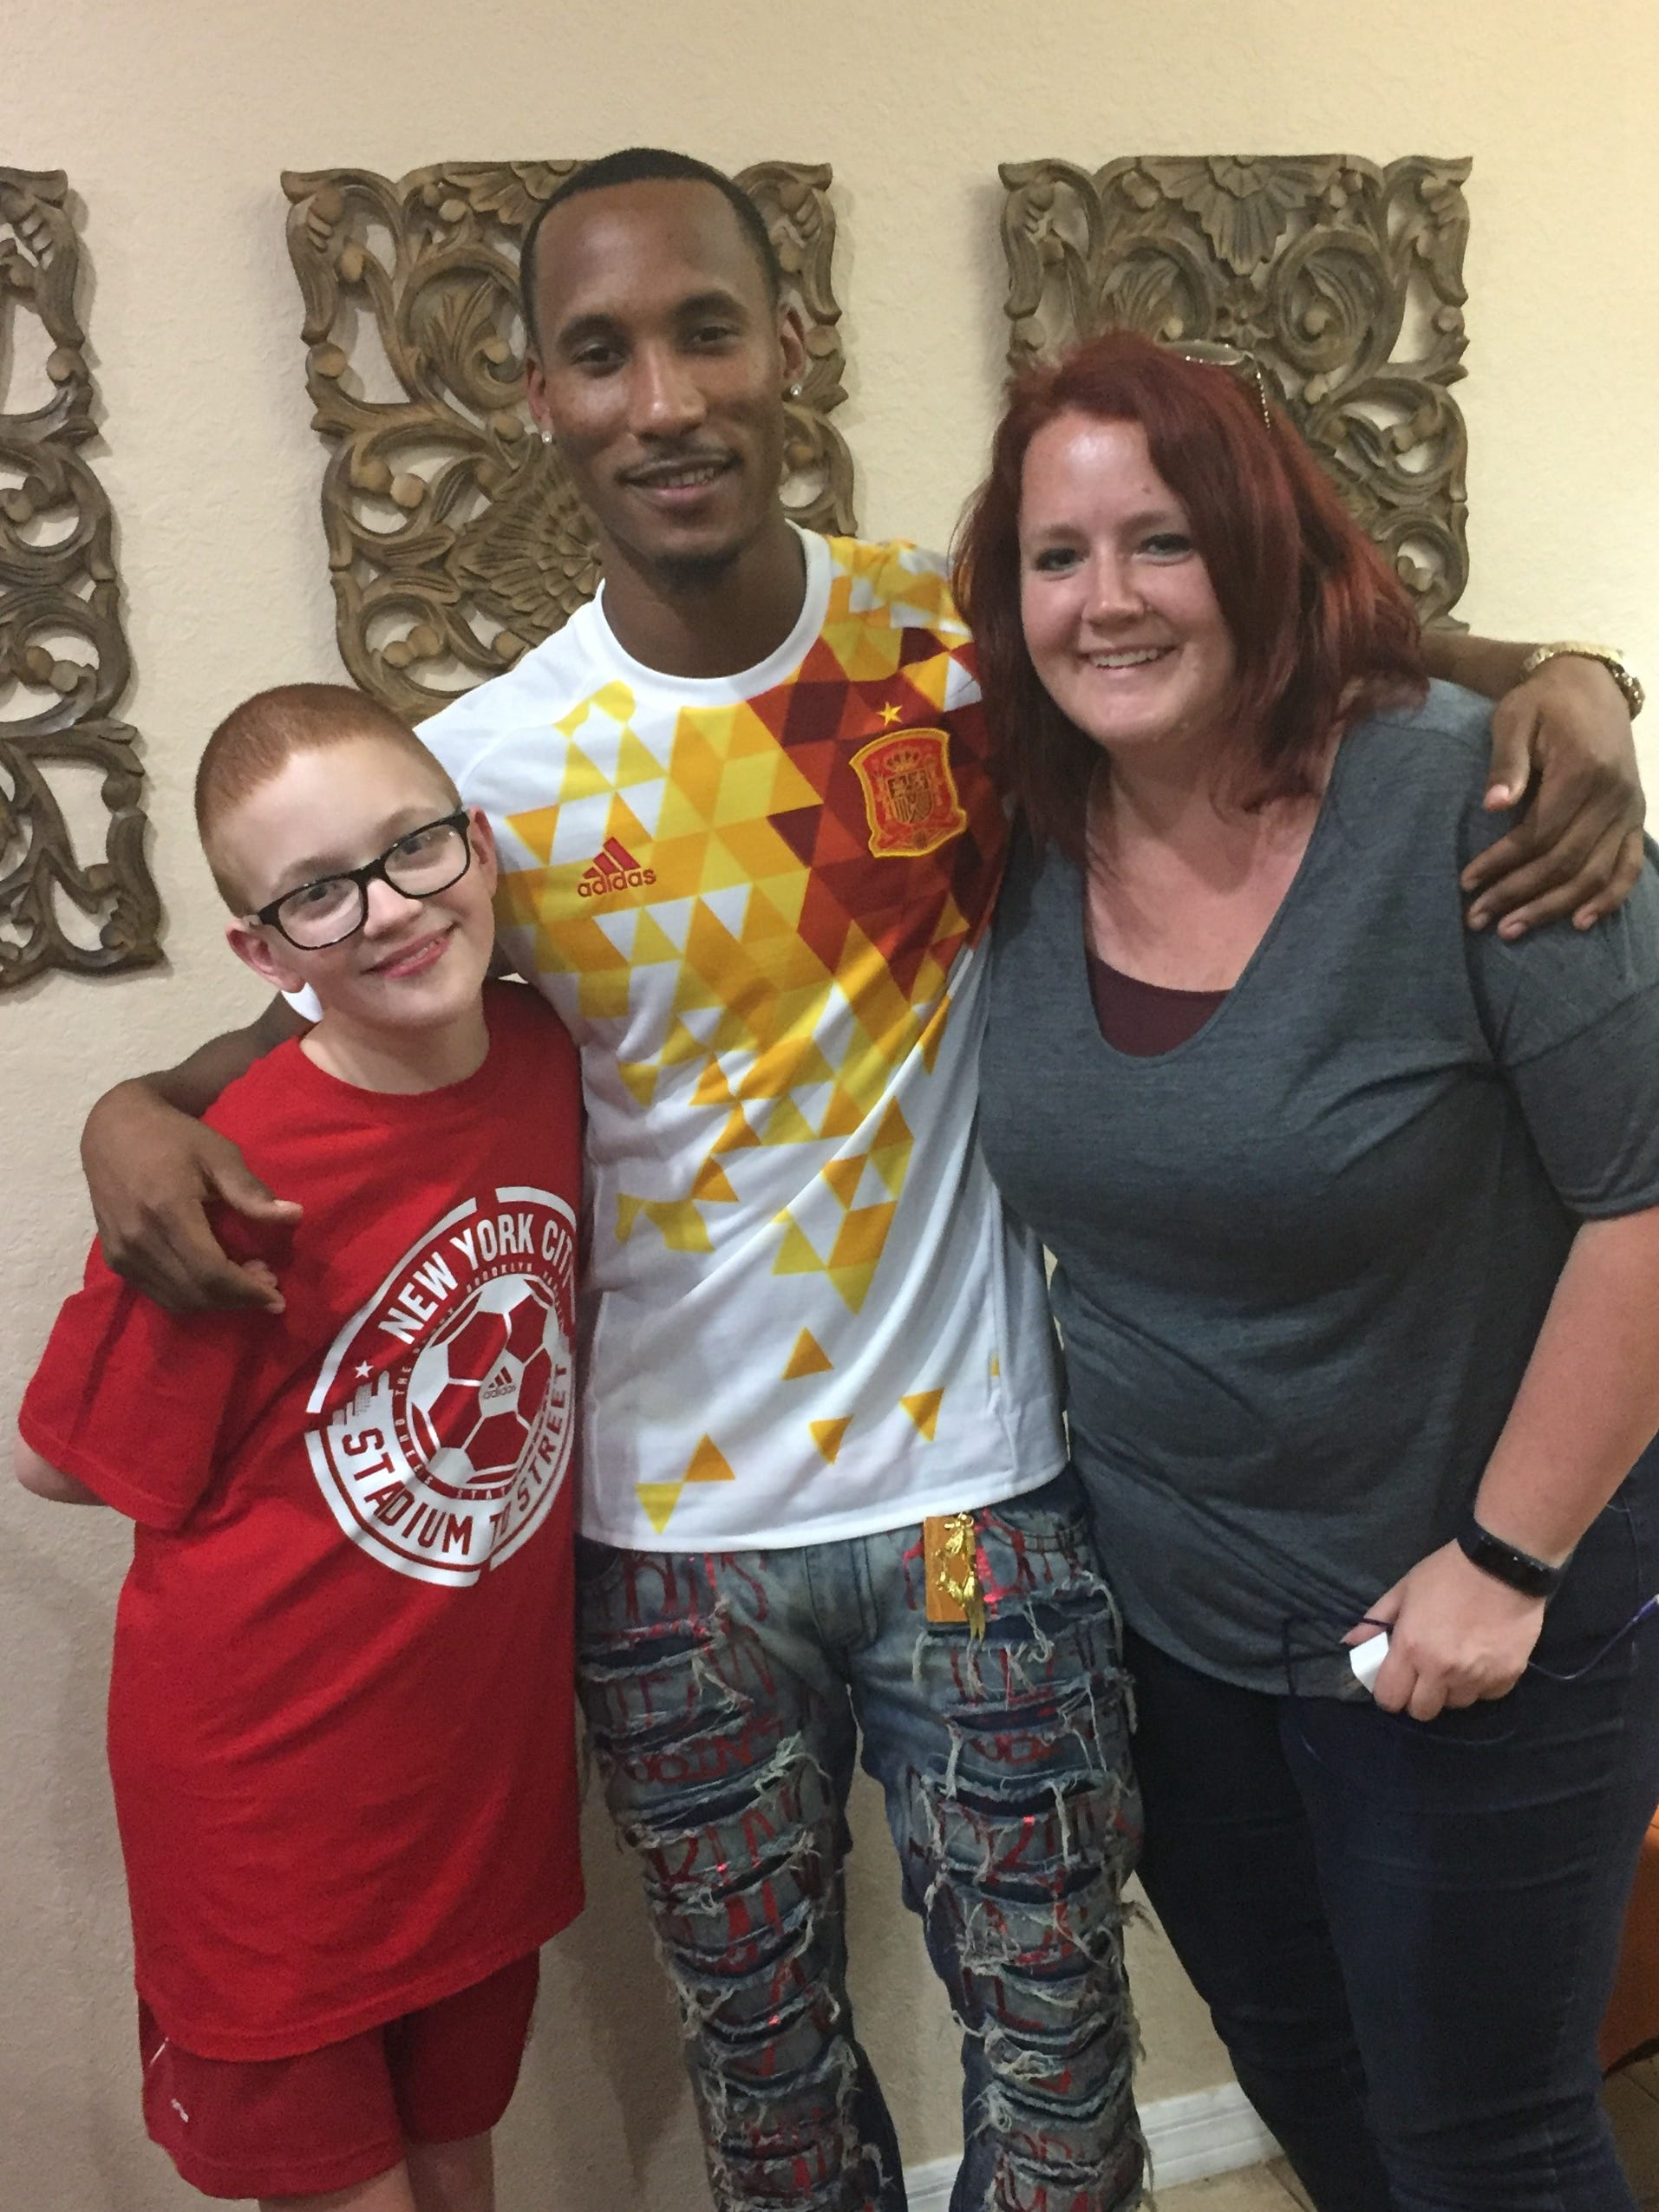 Giants Rookie Travis Rudolph S Inspirational And Emotional Story Of Love And Loss